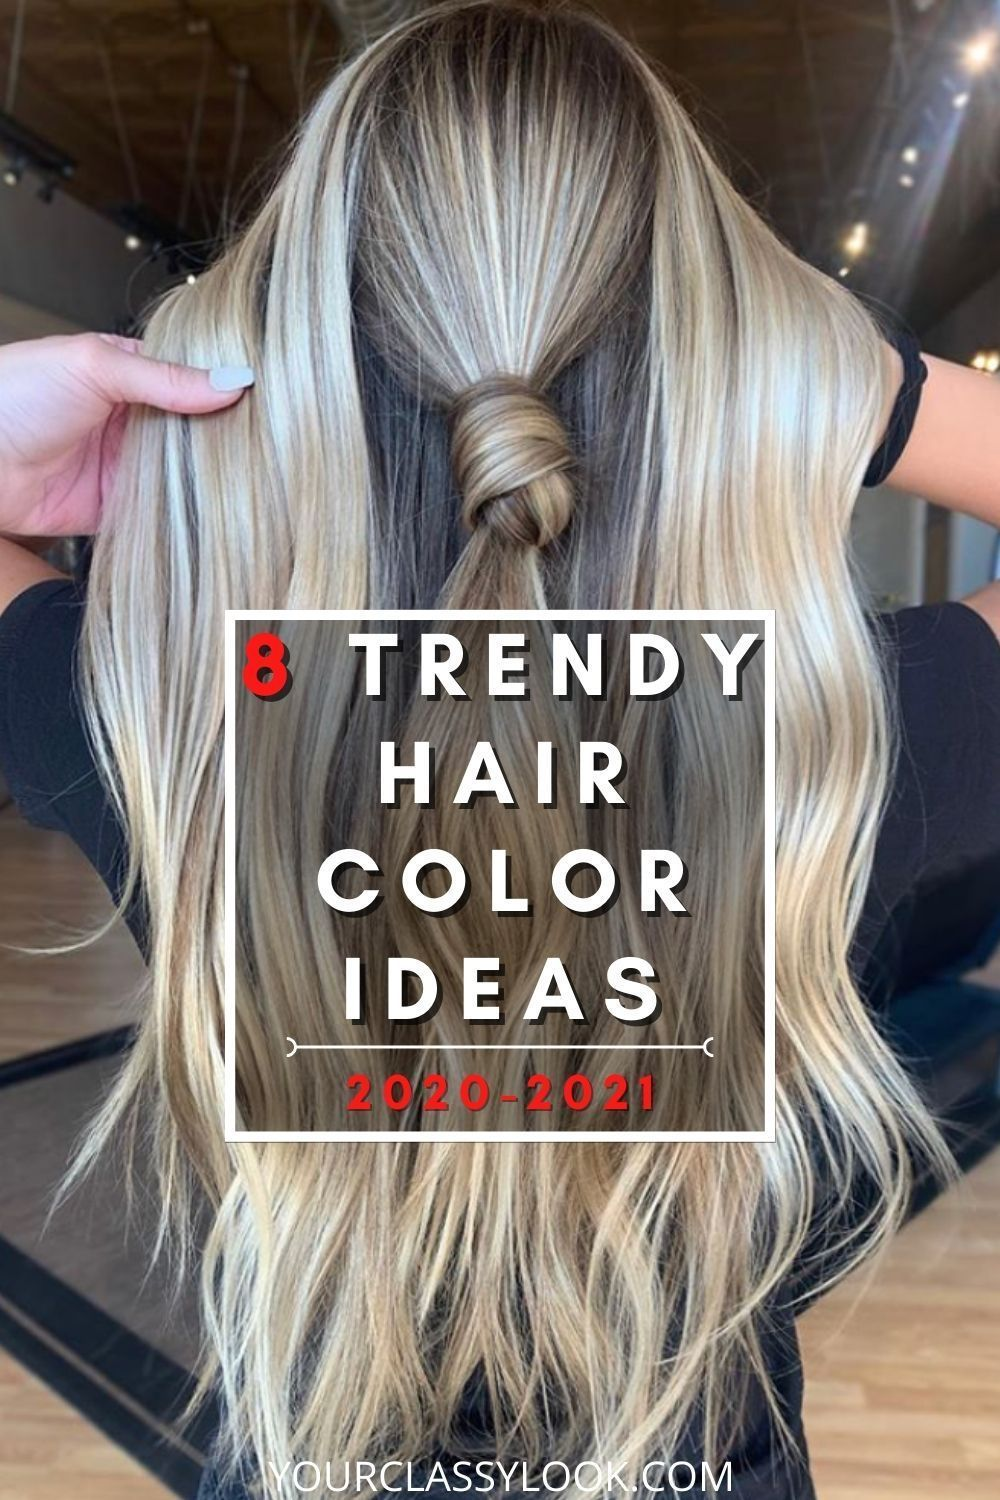 8 Biggest Hair Color Trends Ideas 2020 2021 Your Classy Look In 2020 Hair Color Trends Hair Color Streaks Hair Color